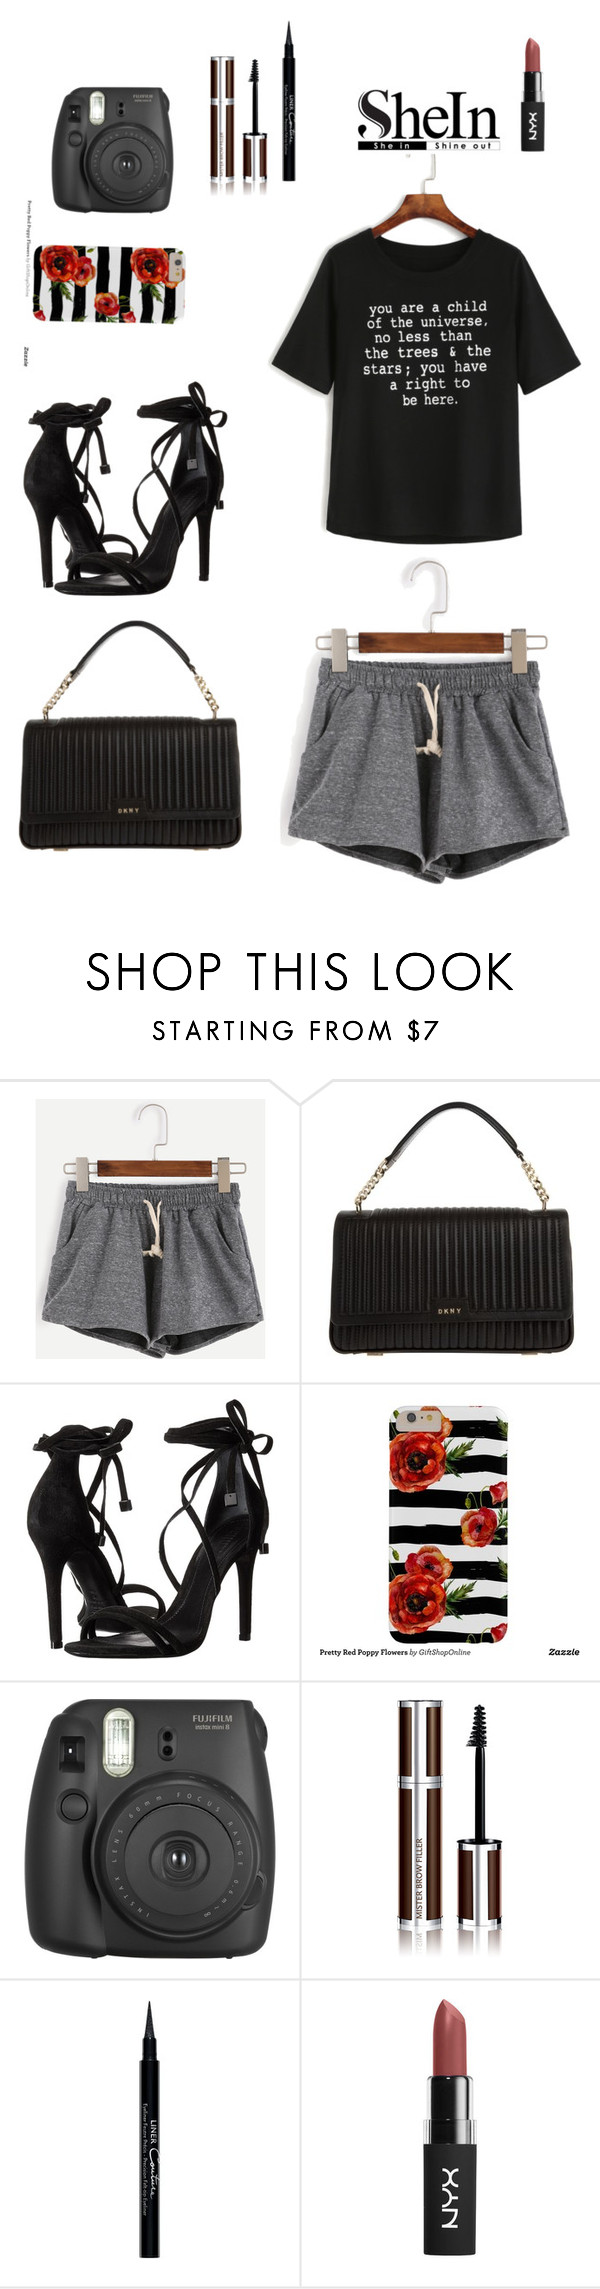 """Bez naslova #53"" by nency-484 ❤ liked on Polyvore featuring DKNY, Schutz, Fujifilm, Givenchy and WithChic"